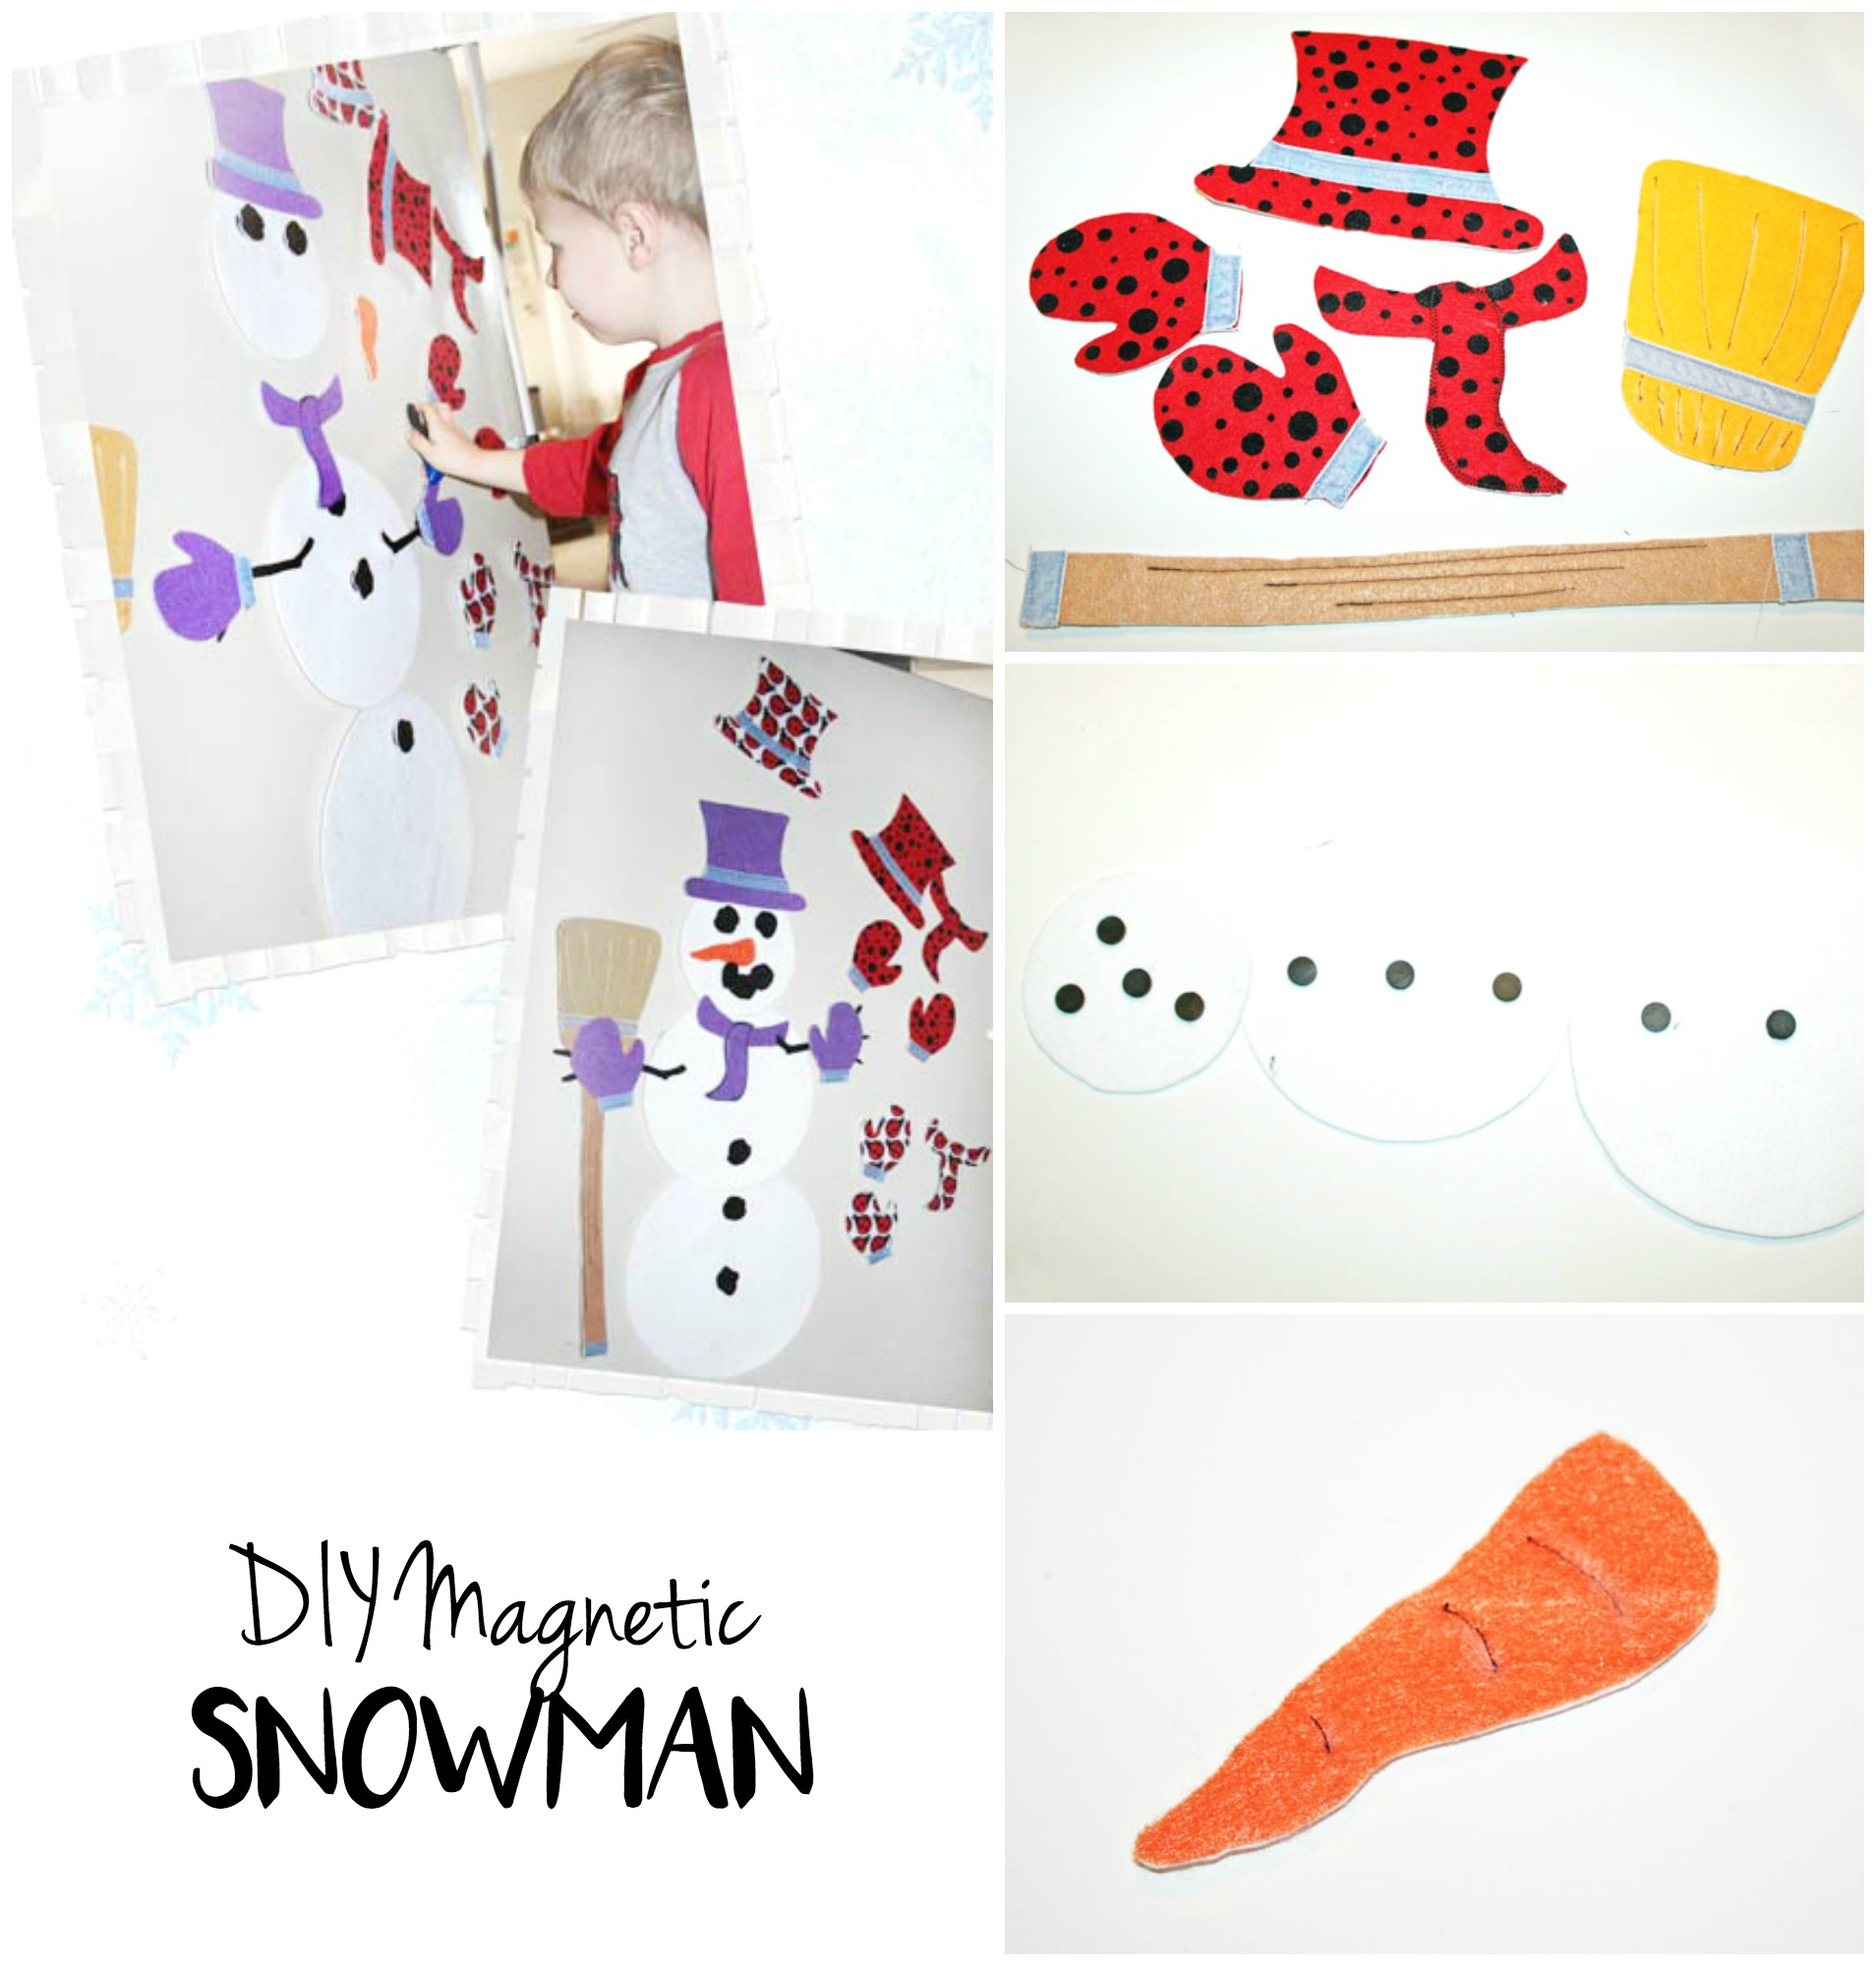 DIY Magnetic Snowman